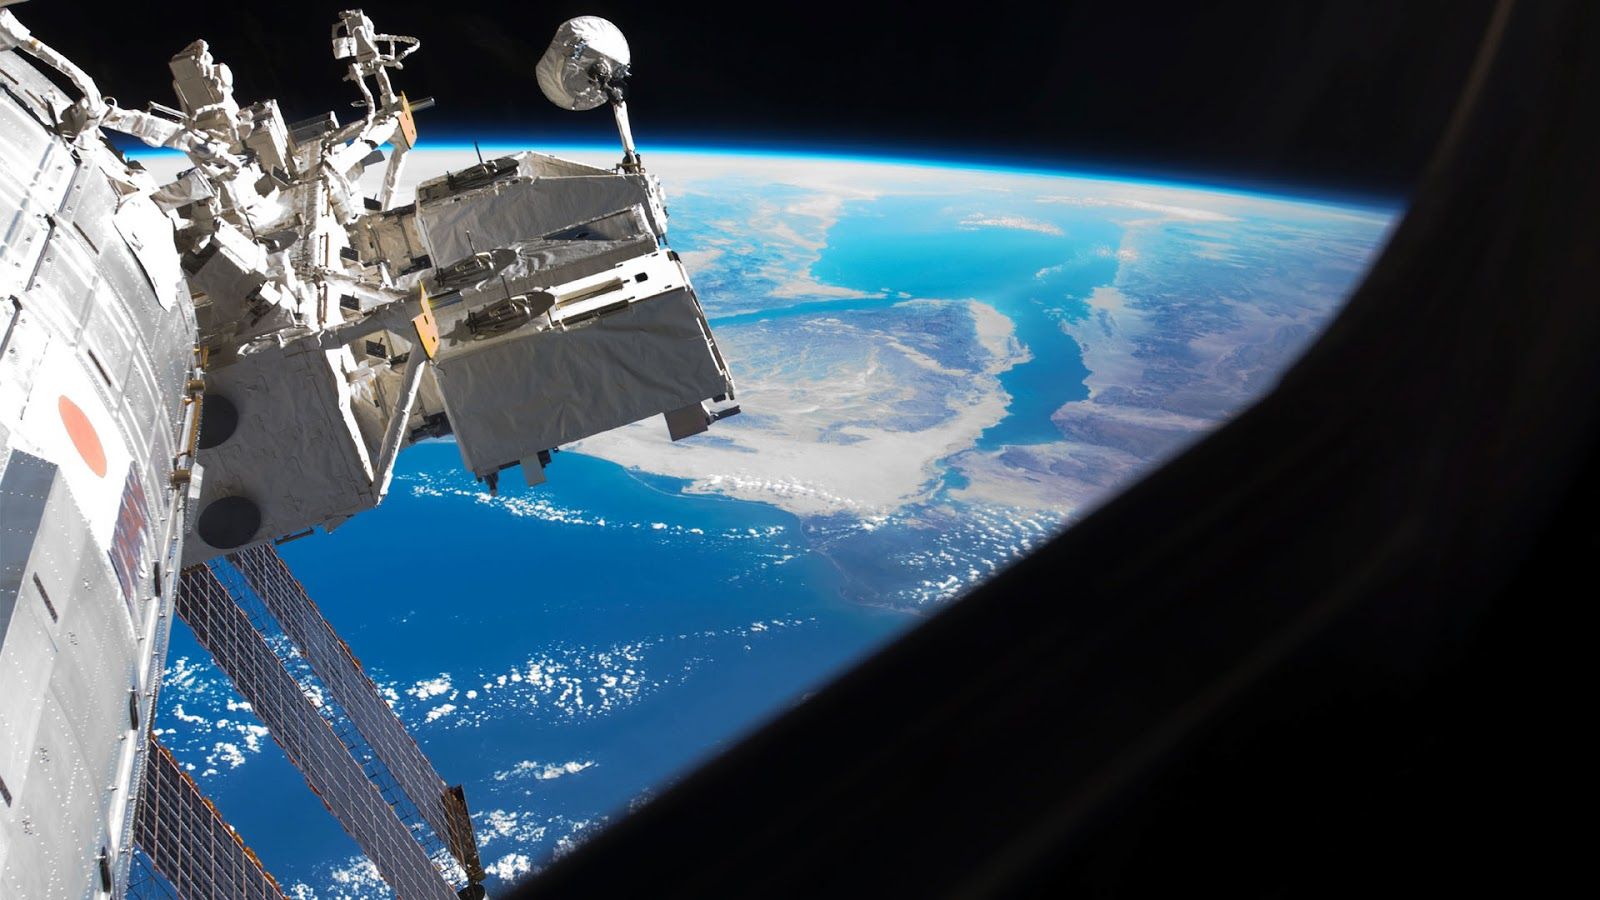 32 space station hd - photo #7